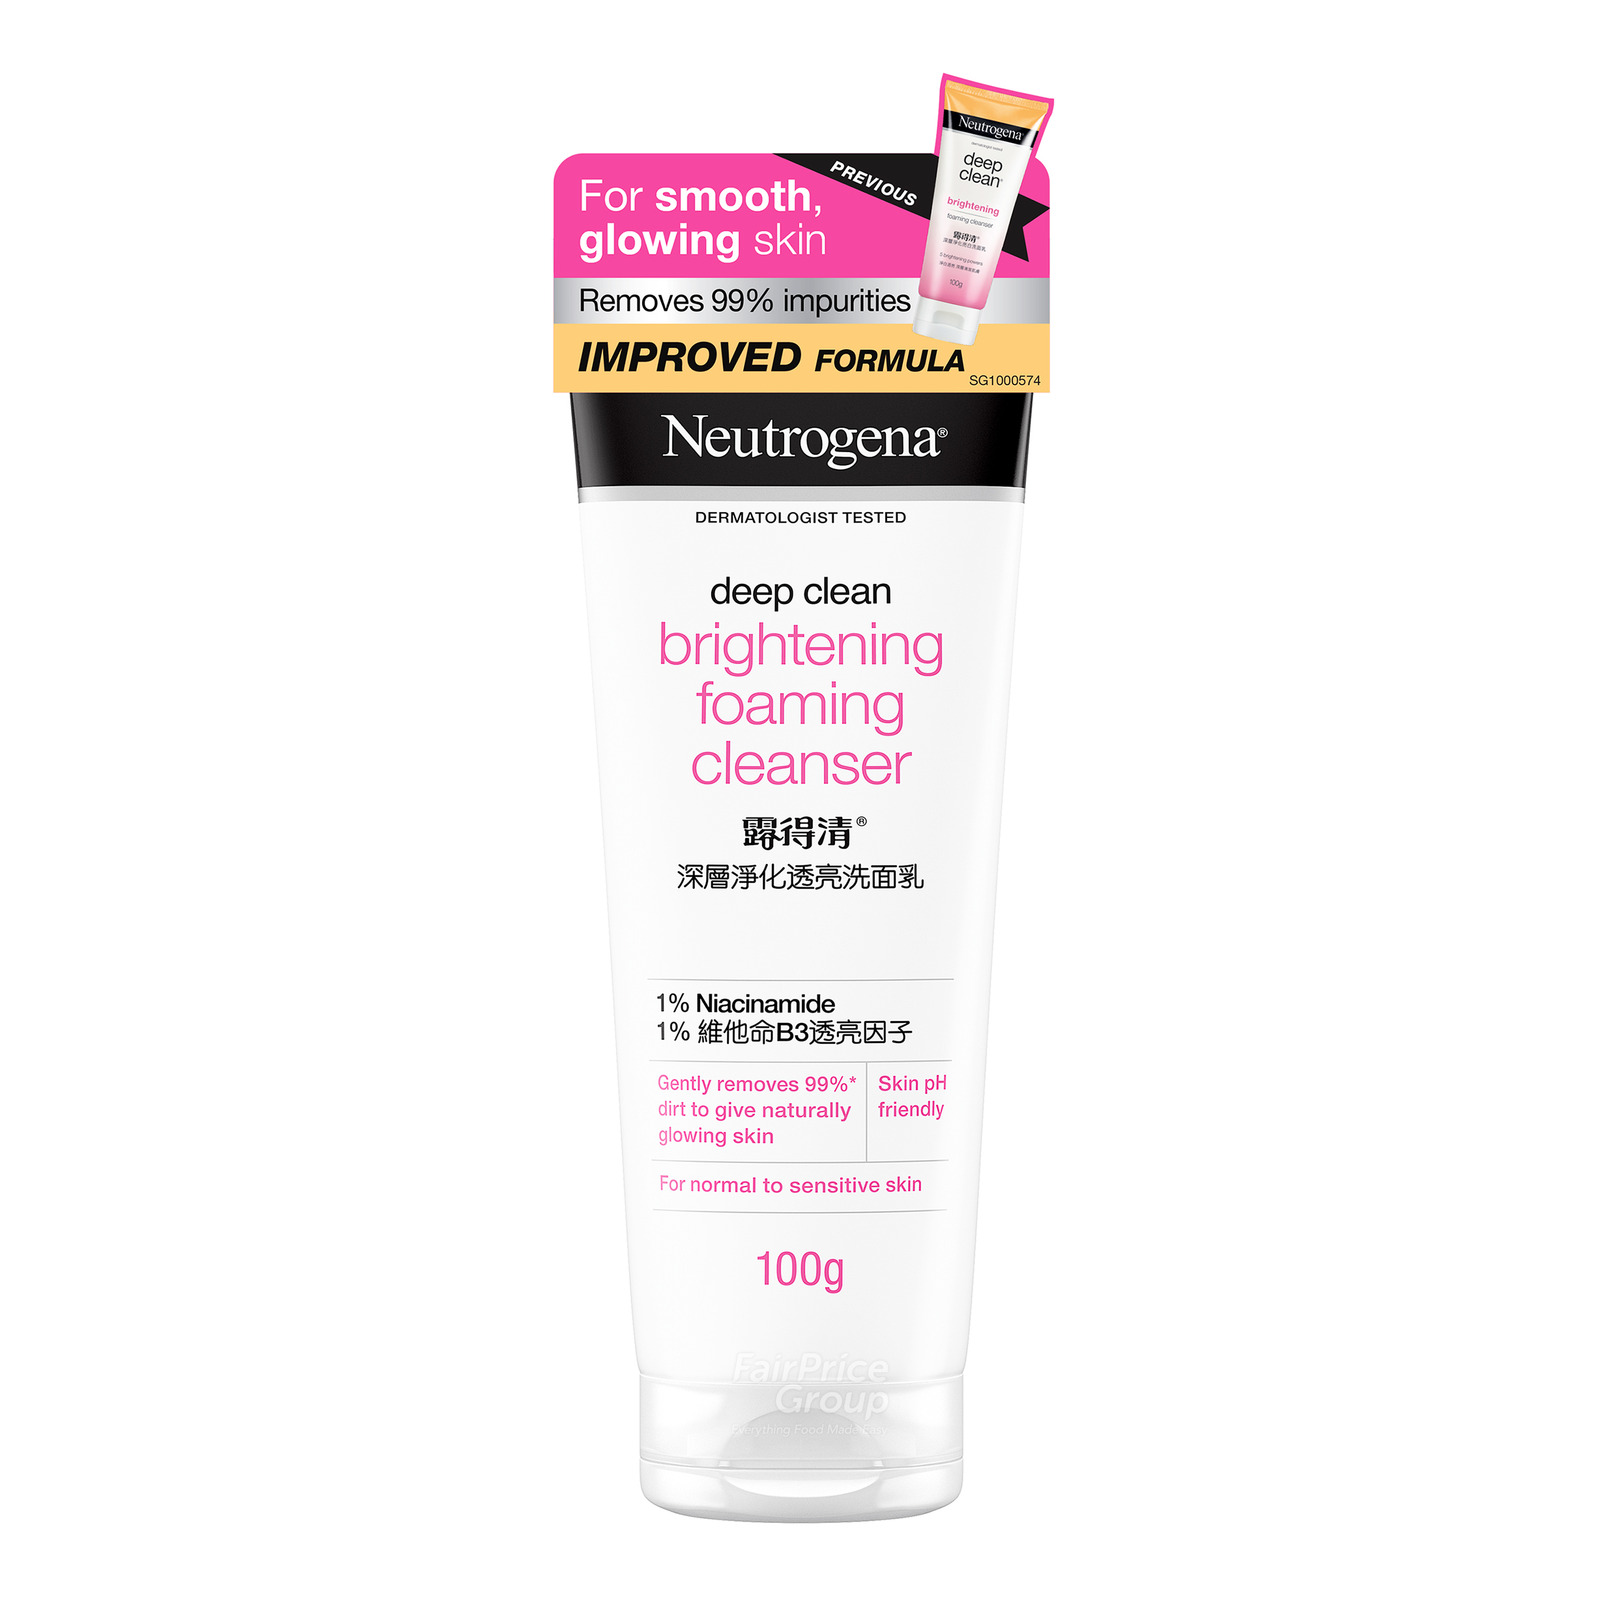 Neutrogena Deep Clean Foam Cleanser - Brightening